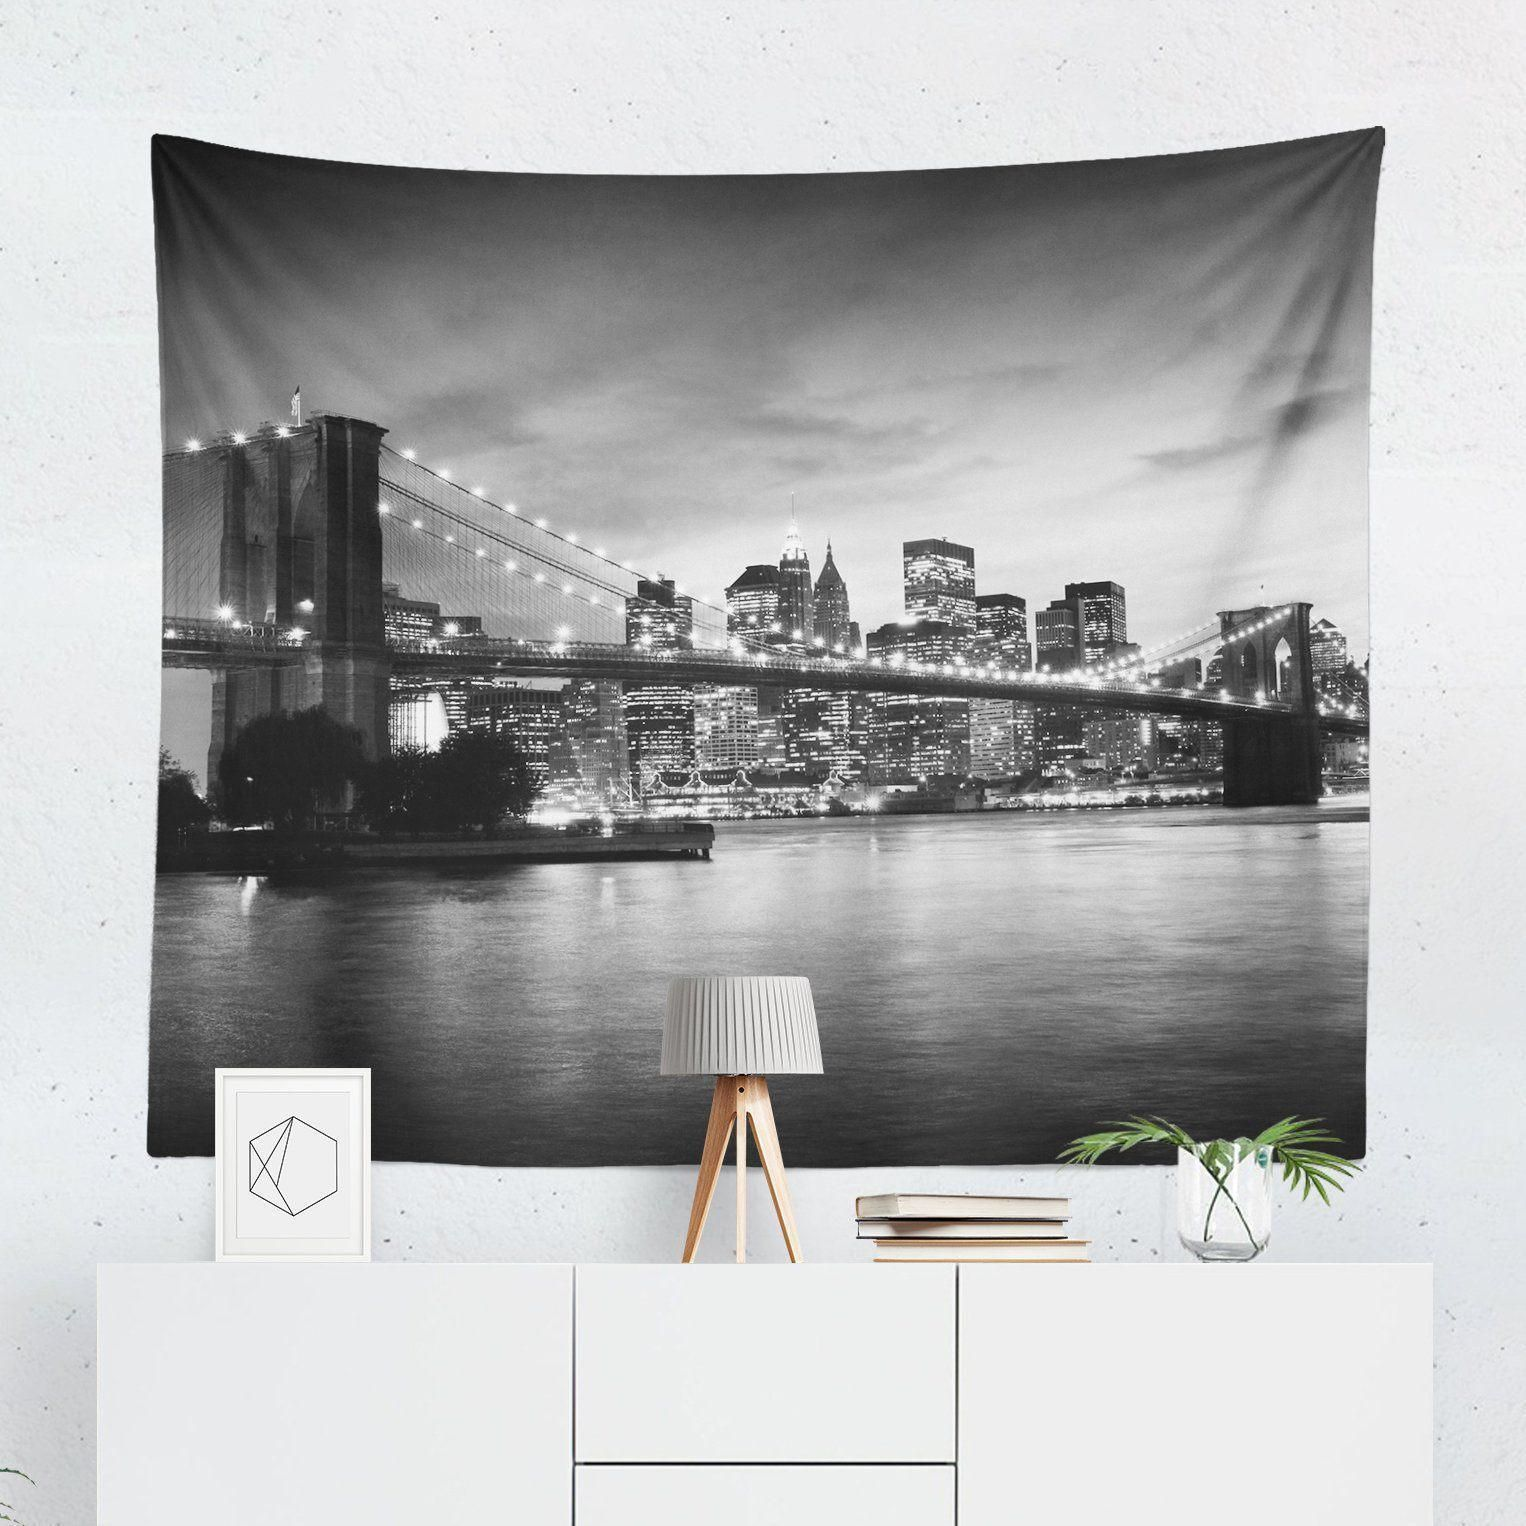 Skyline Wall Tapestry Wall Tapestry Window Coverings Tapestry